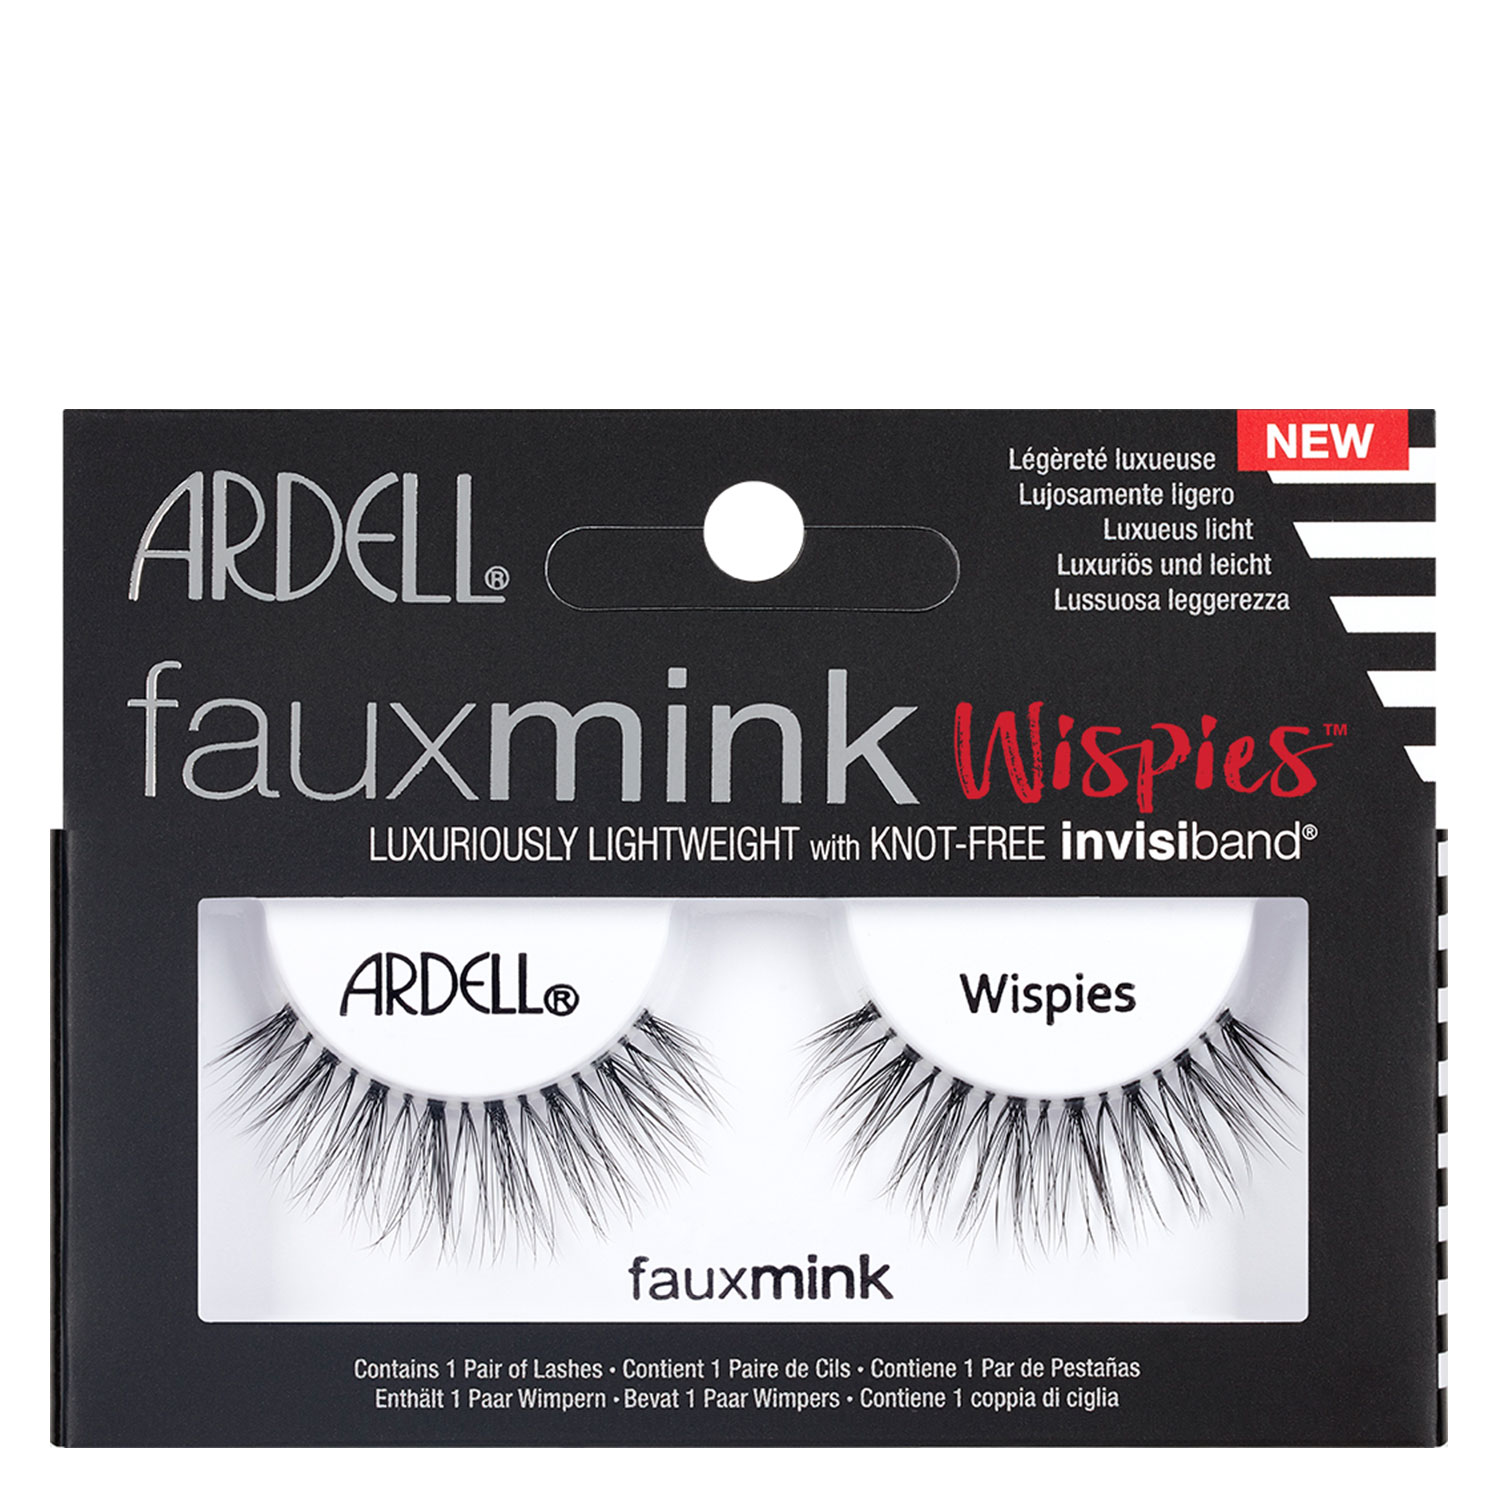 Ardell False Lashes - Faux Mink Wispies